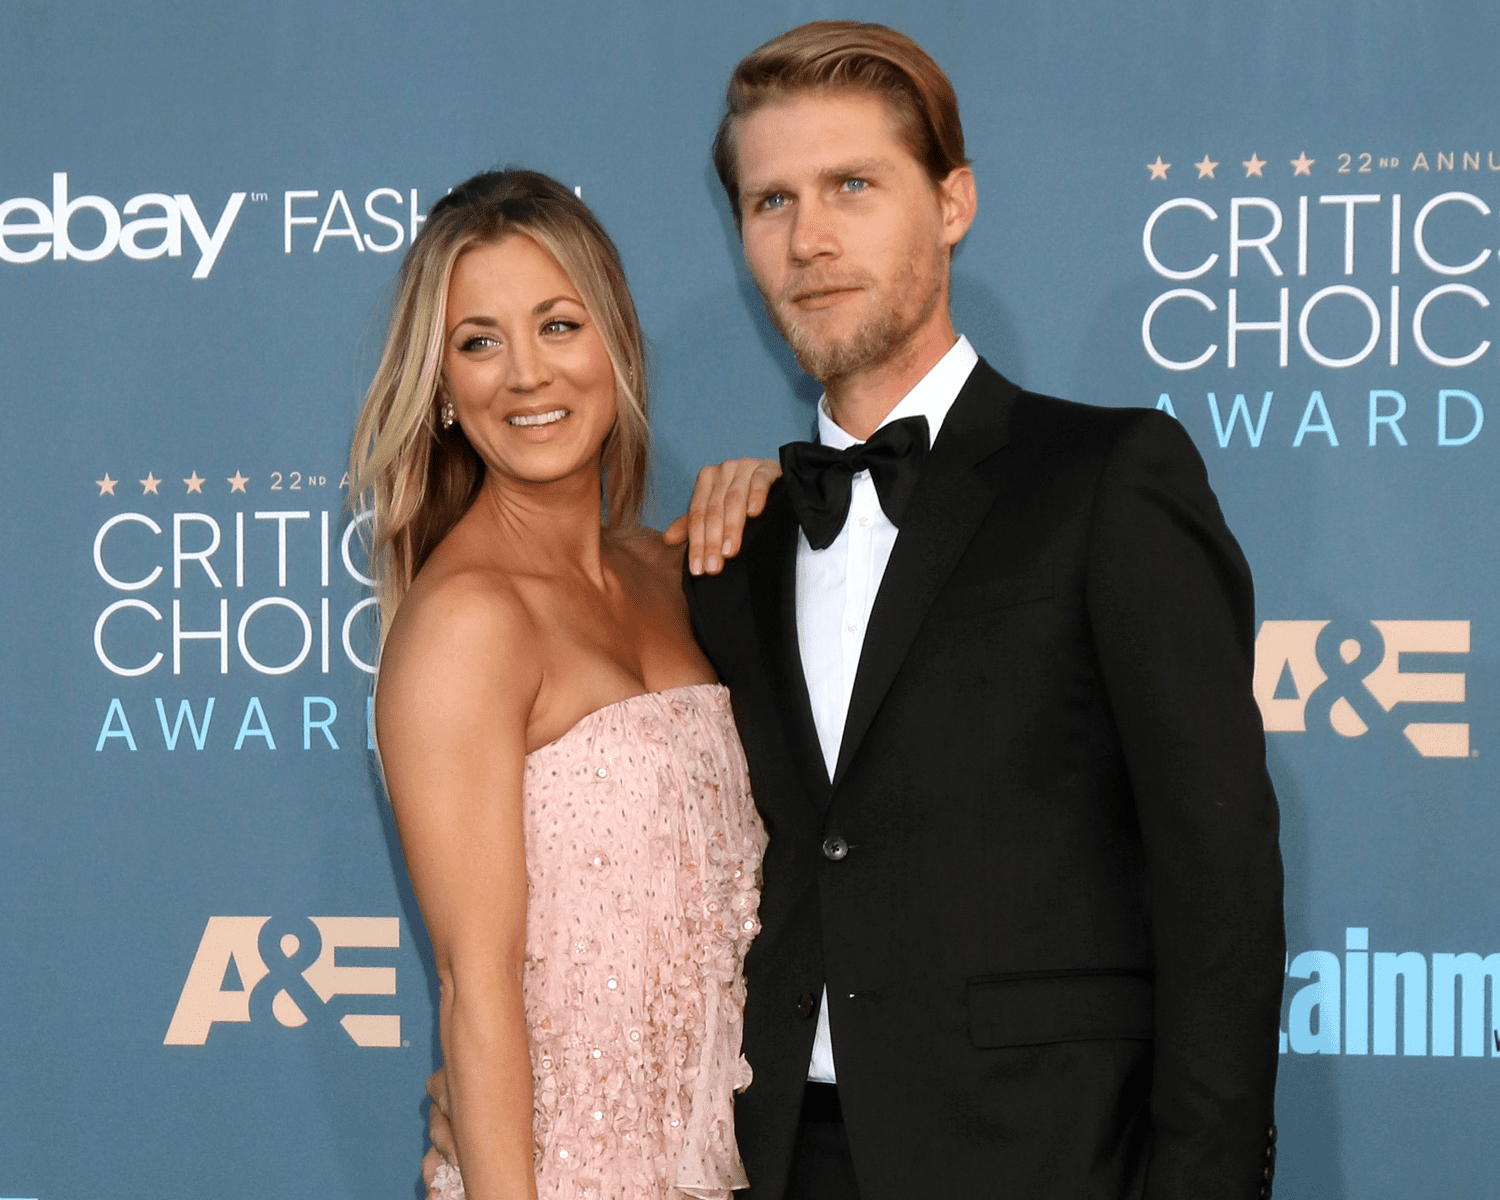 Kaley Cuoco dated Karl Cook